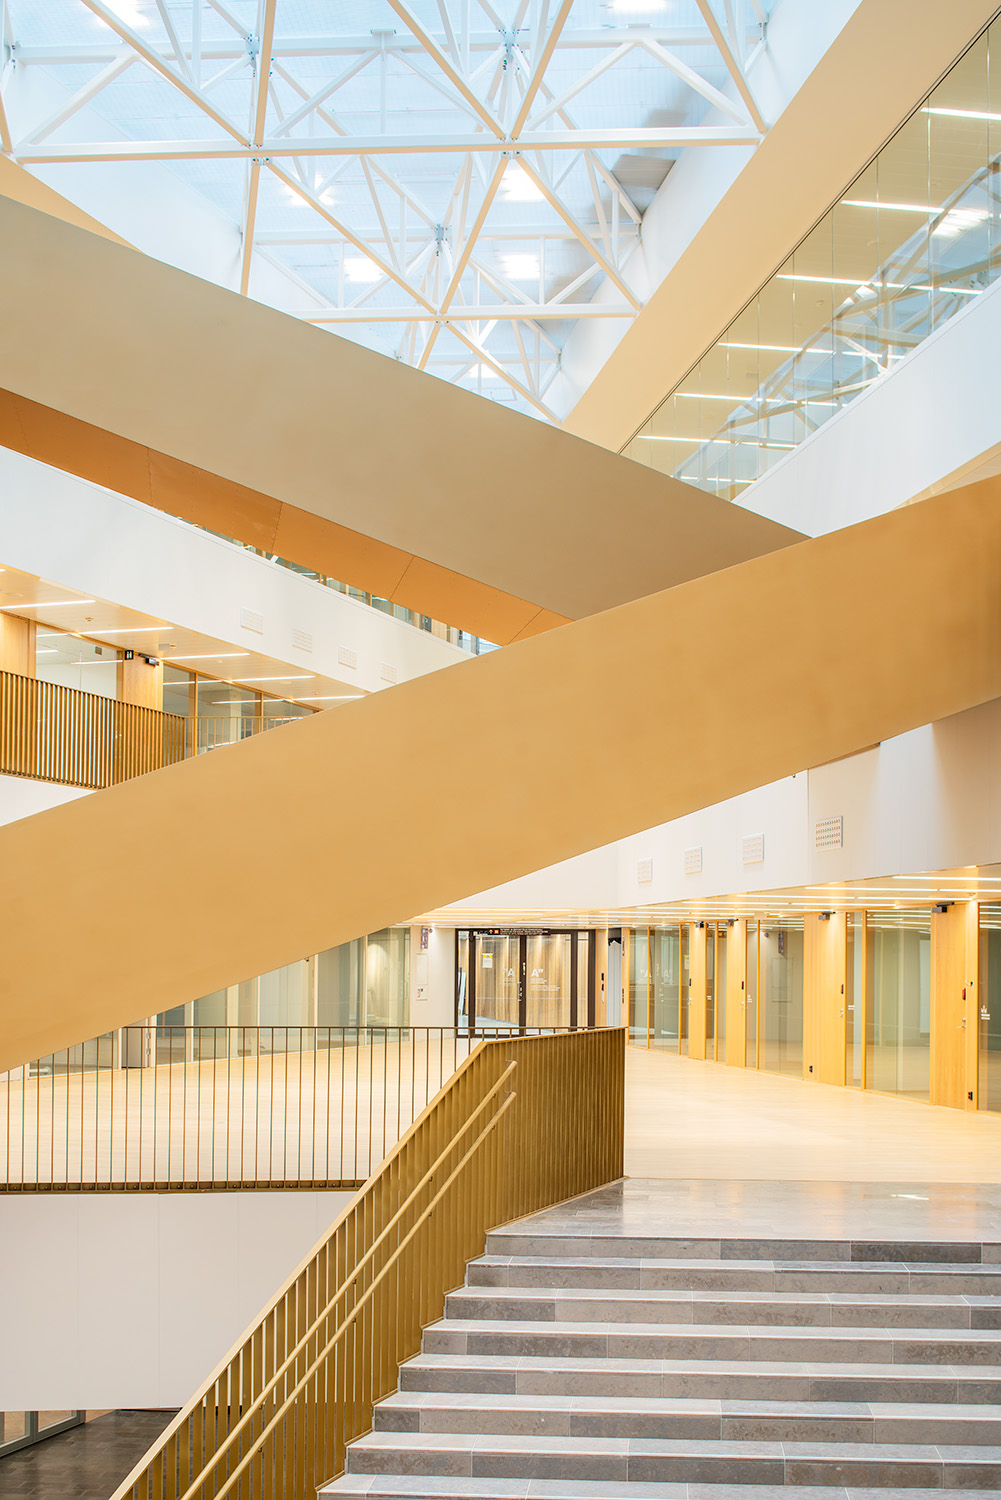 MH AALTO UNIVERSITY SCHOOL OF BUSINESS VERSTAS ARCHITECTS 5